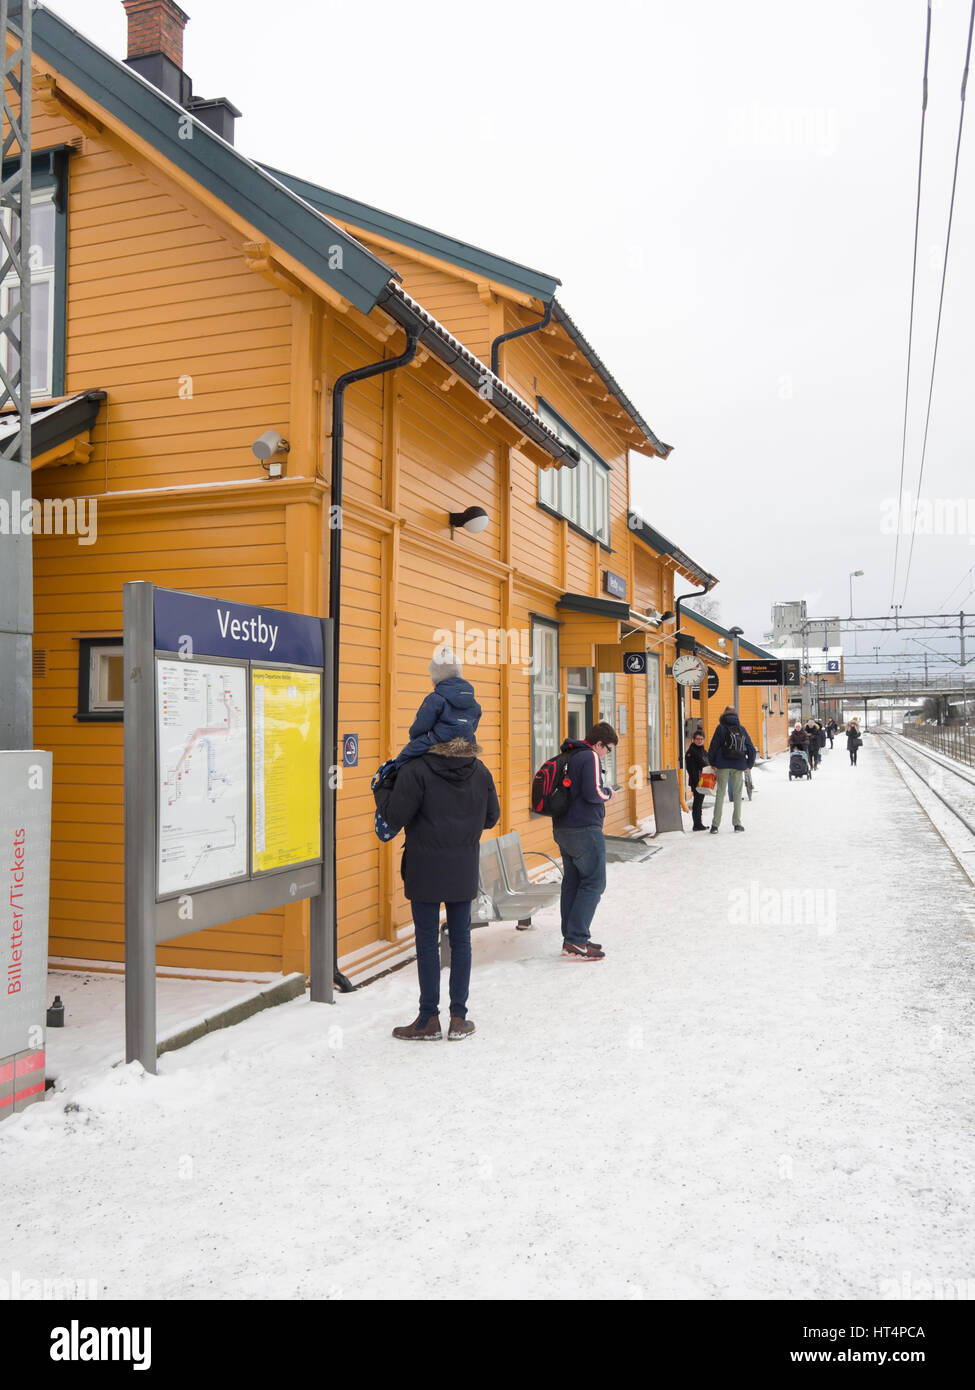 Vestby railway station in Akershus, within easy commuting distance from Oslo Norway, trains as local public transport - Stock Image